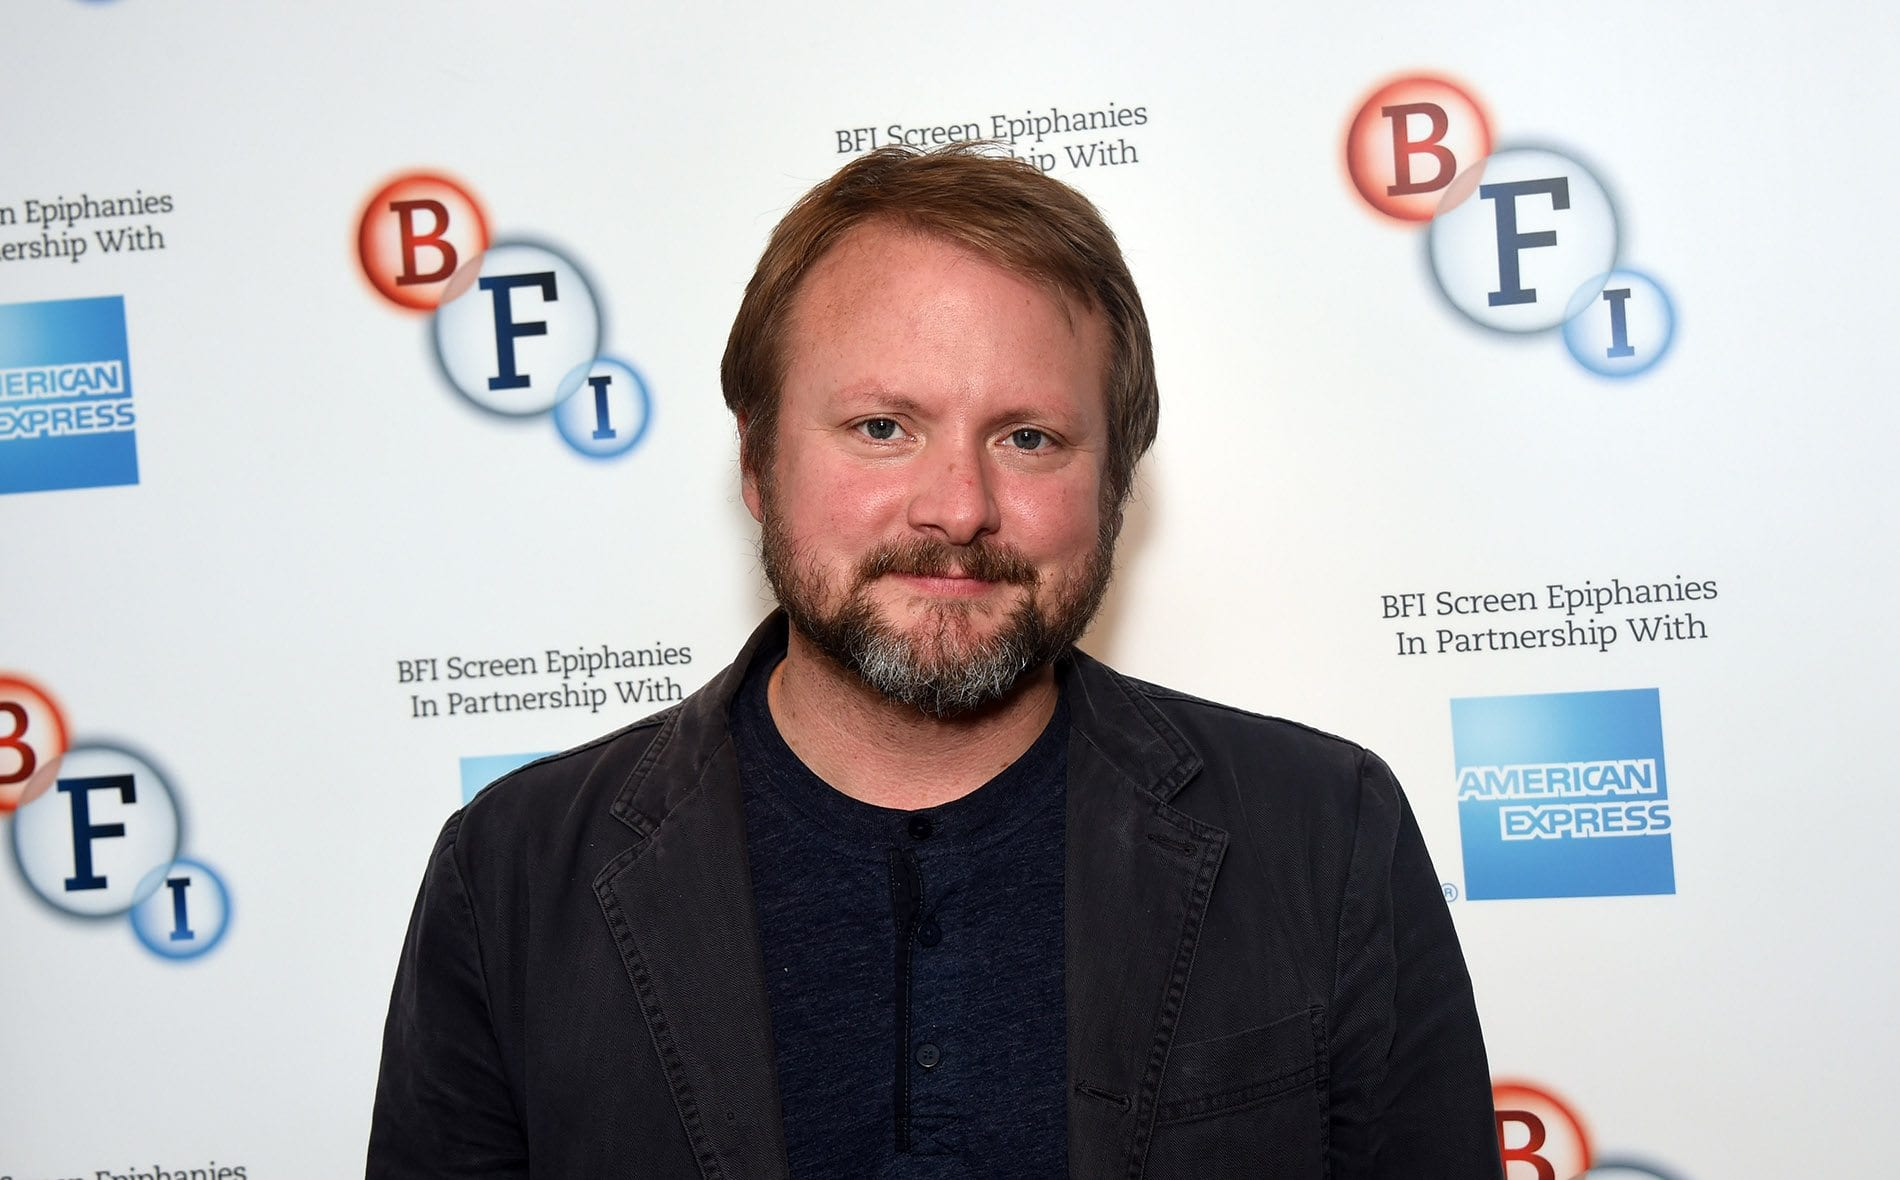 Perverted producers and depressed directors: The Harvey Weinstein story continues to get more disgusting and Rian Johnson really hates being misquoted.